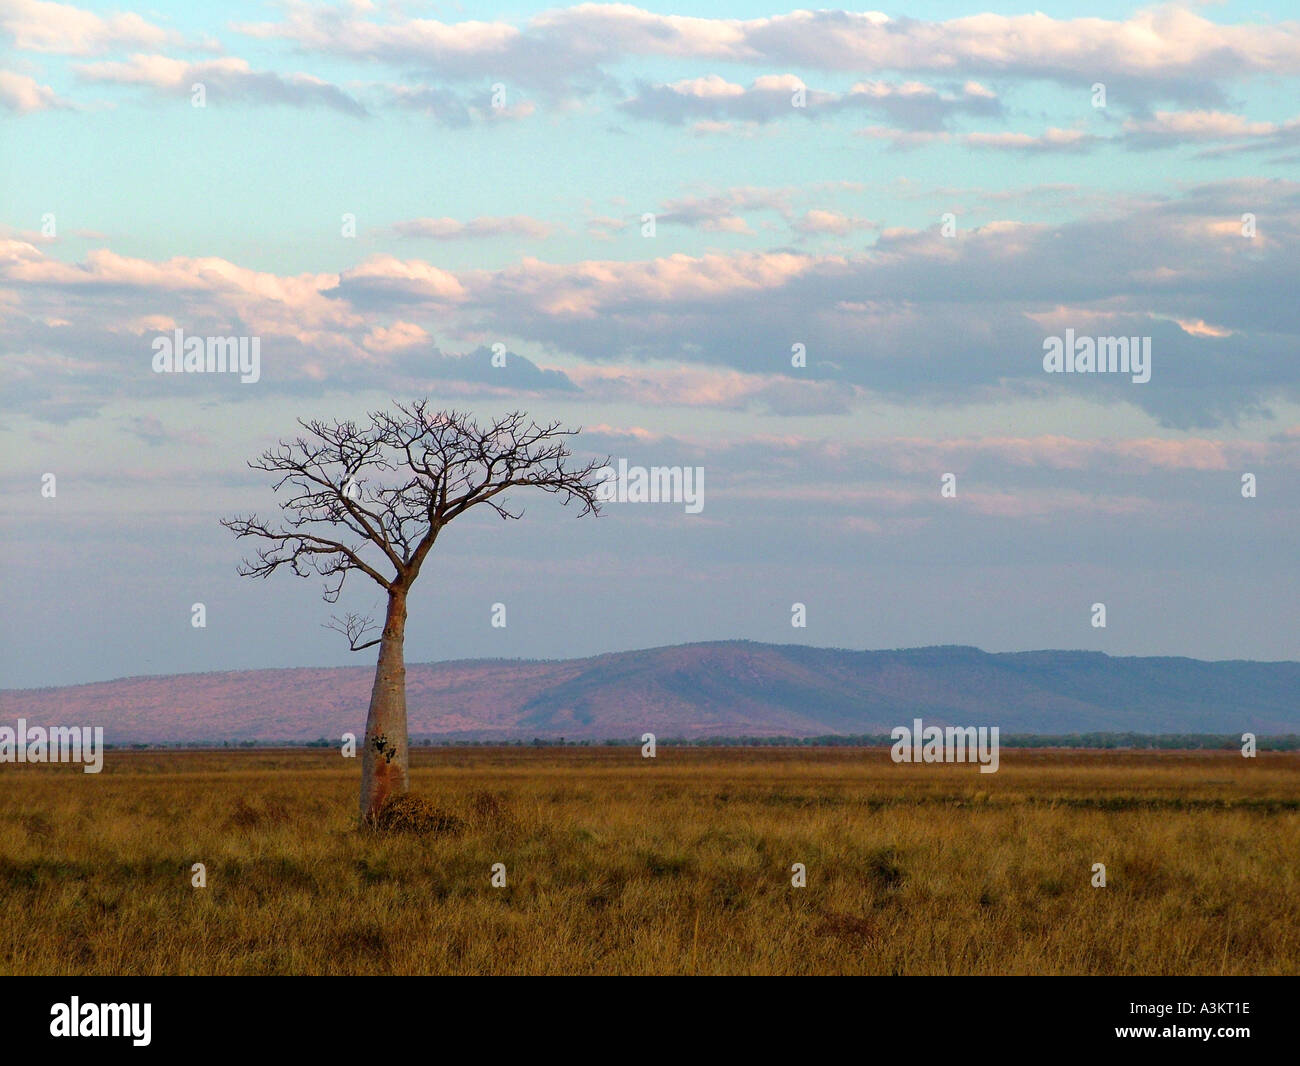 Lonesome tree outback Australia - Stock Image